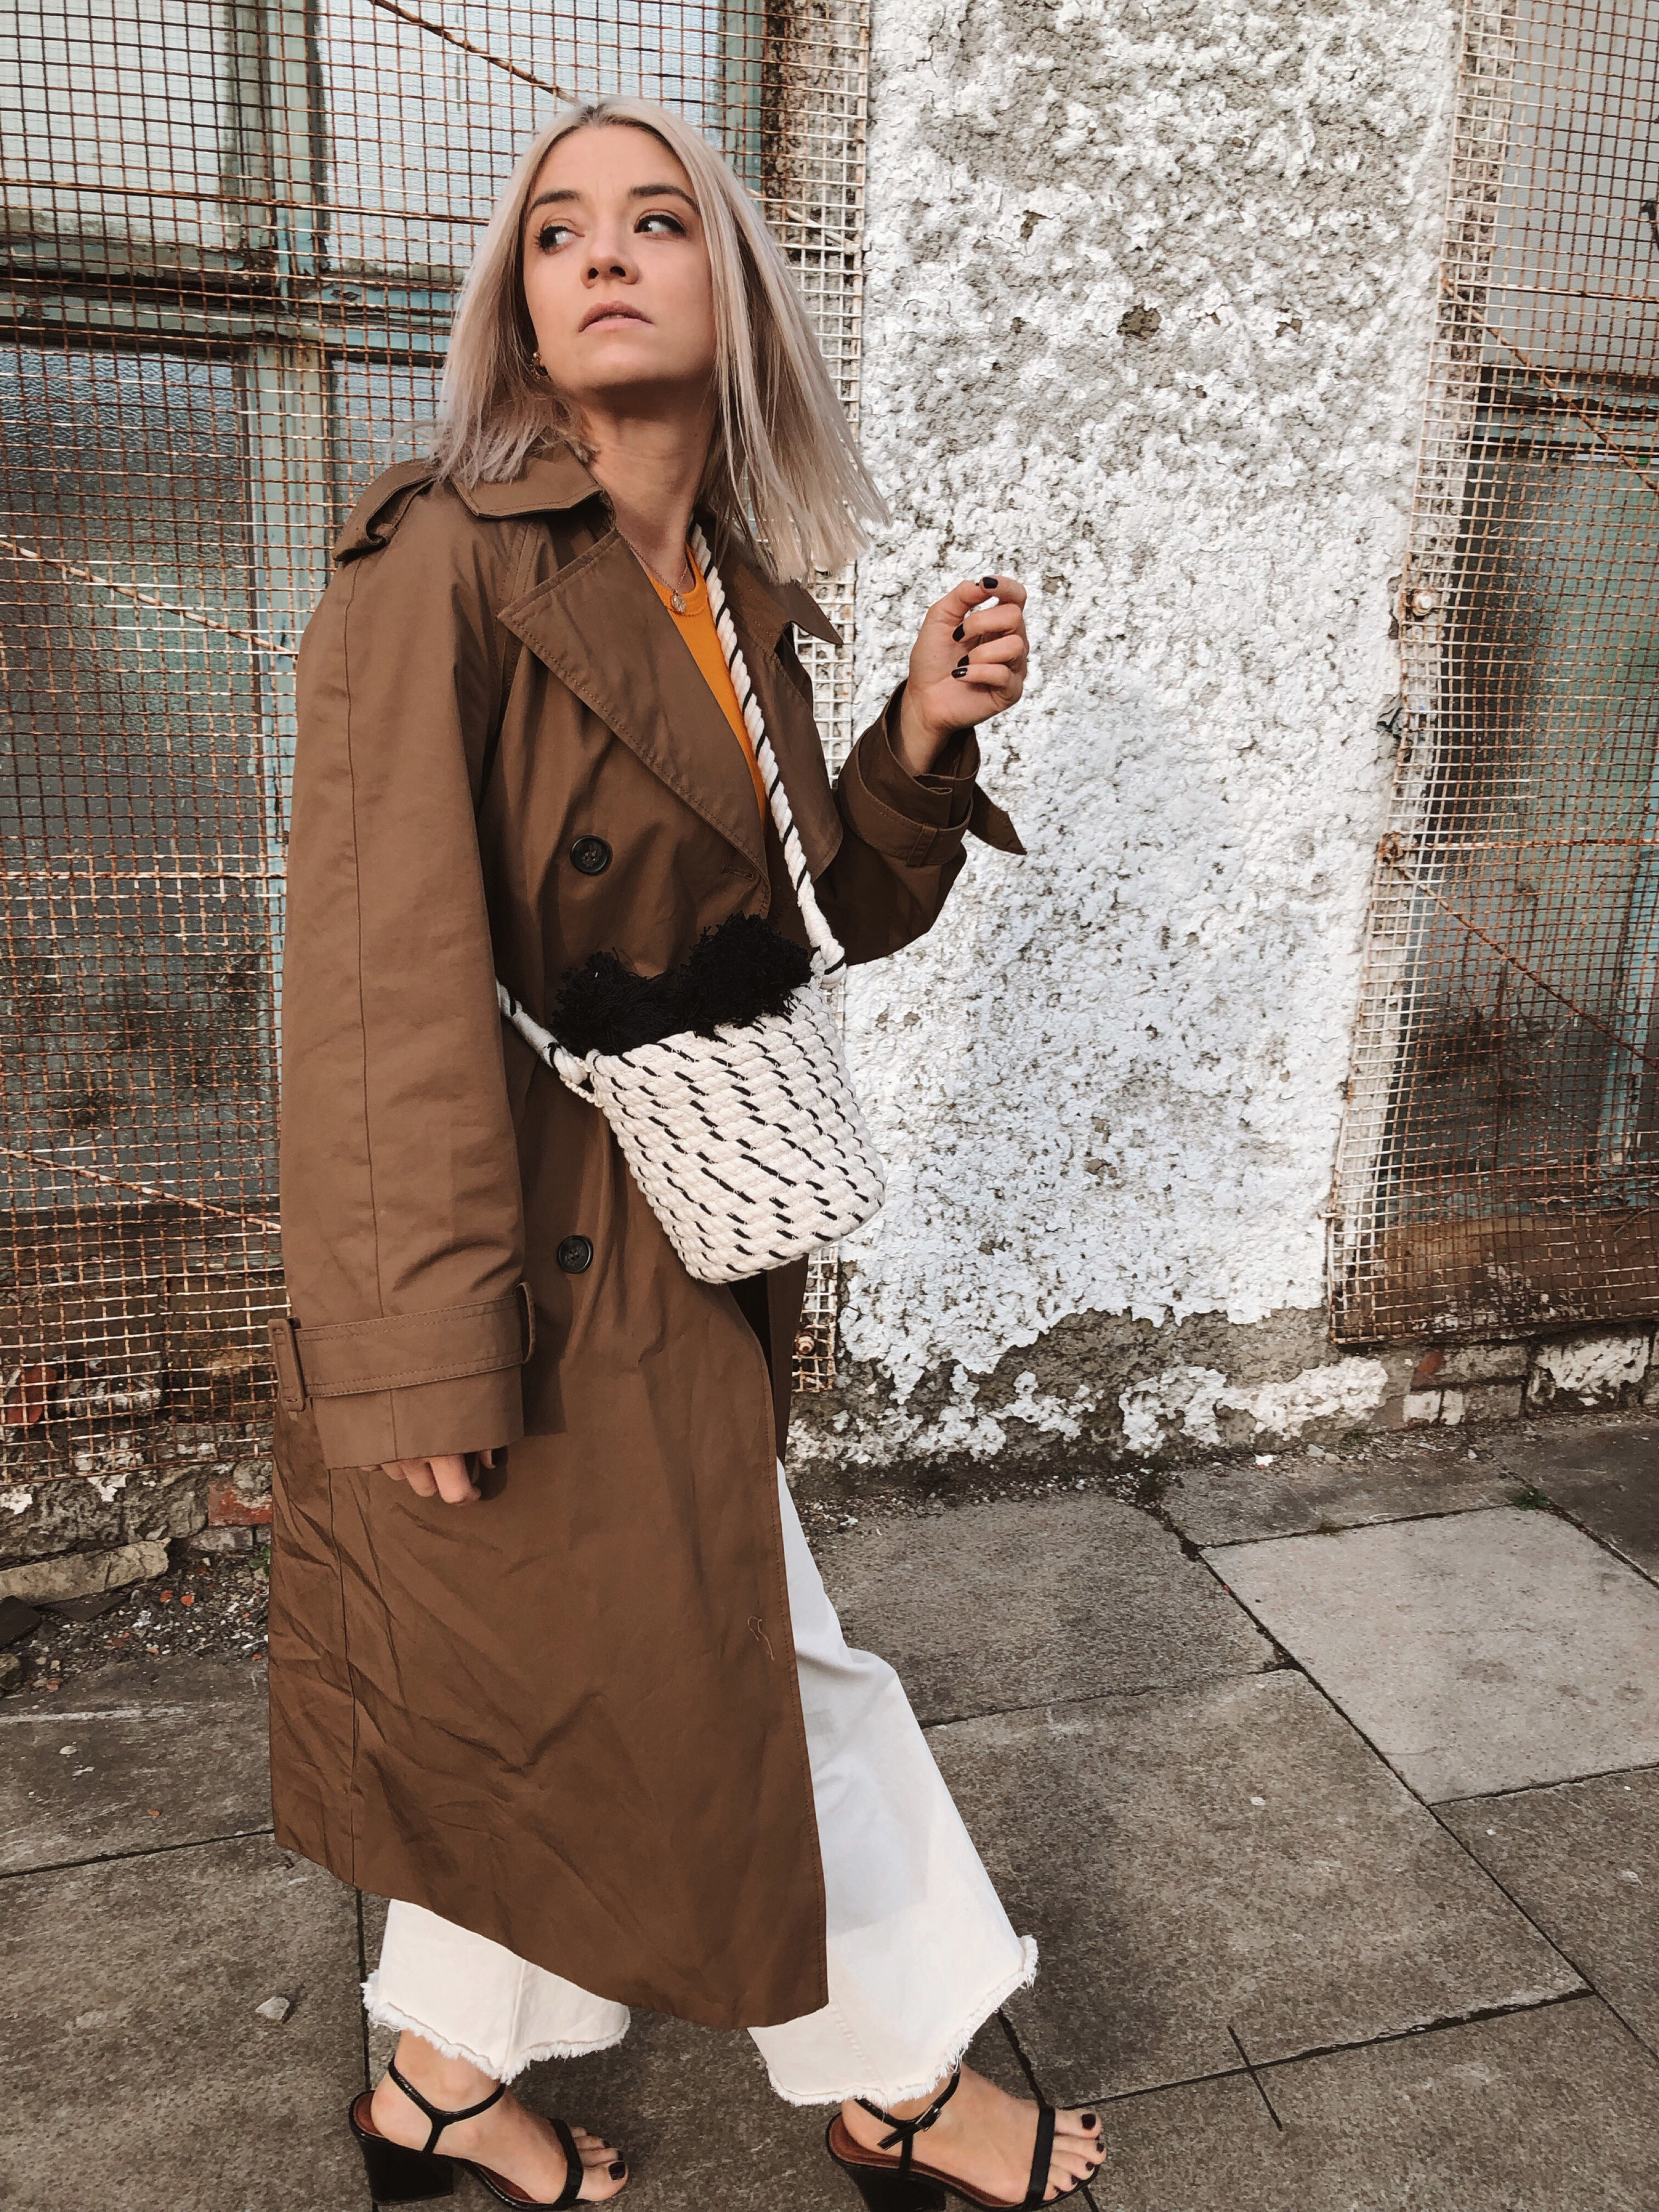 h&m studio collection ss19, cream jeans, orange tank top, ribbed tank top, trench coat, black heels, joey taylor, northern magpie 4